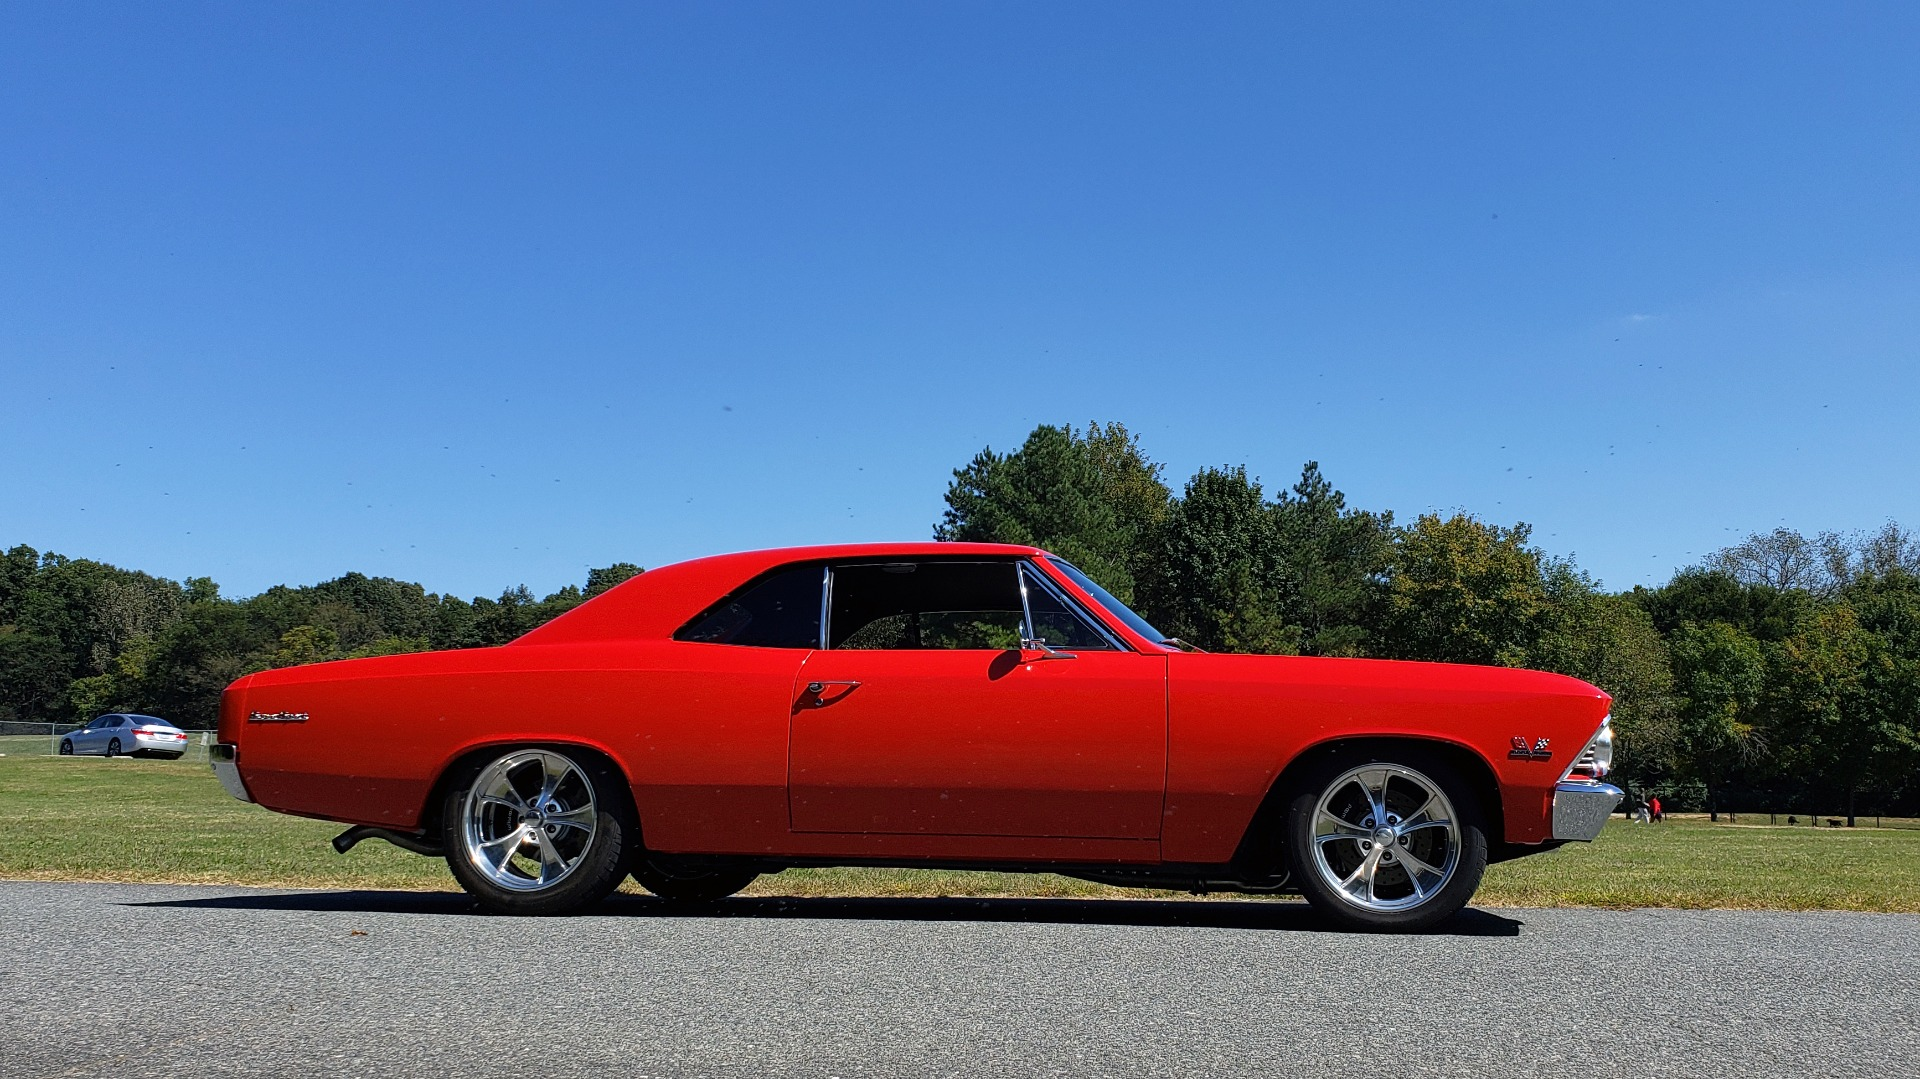 Used 1966 Chevrolet CHEVELLE SS 396 CUSTOM RESTO-MOD / 4-SPEED MANUAL / 12-BOLT REAR for sale $74,999 at Formula Imports in Charlotte NC 28227 10